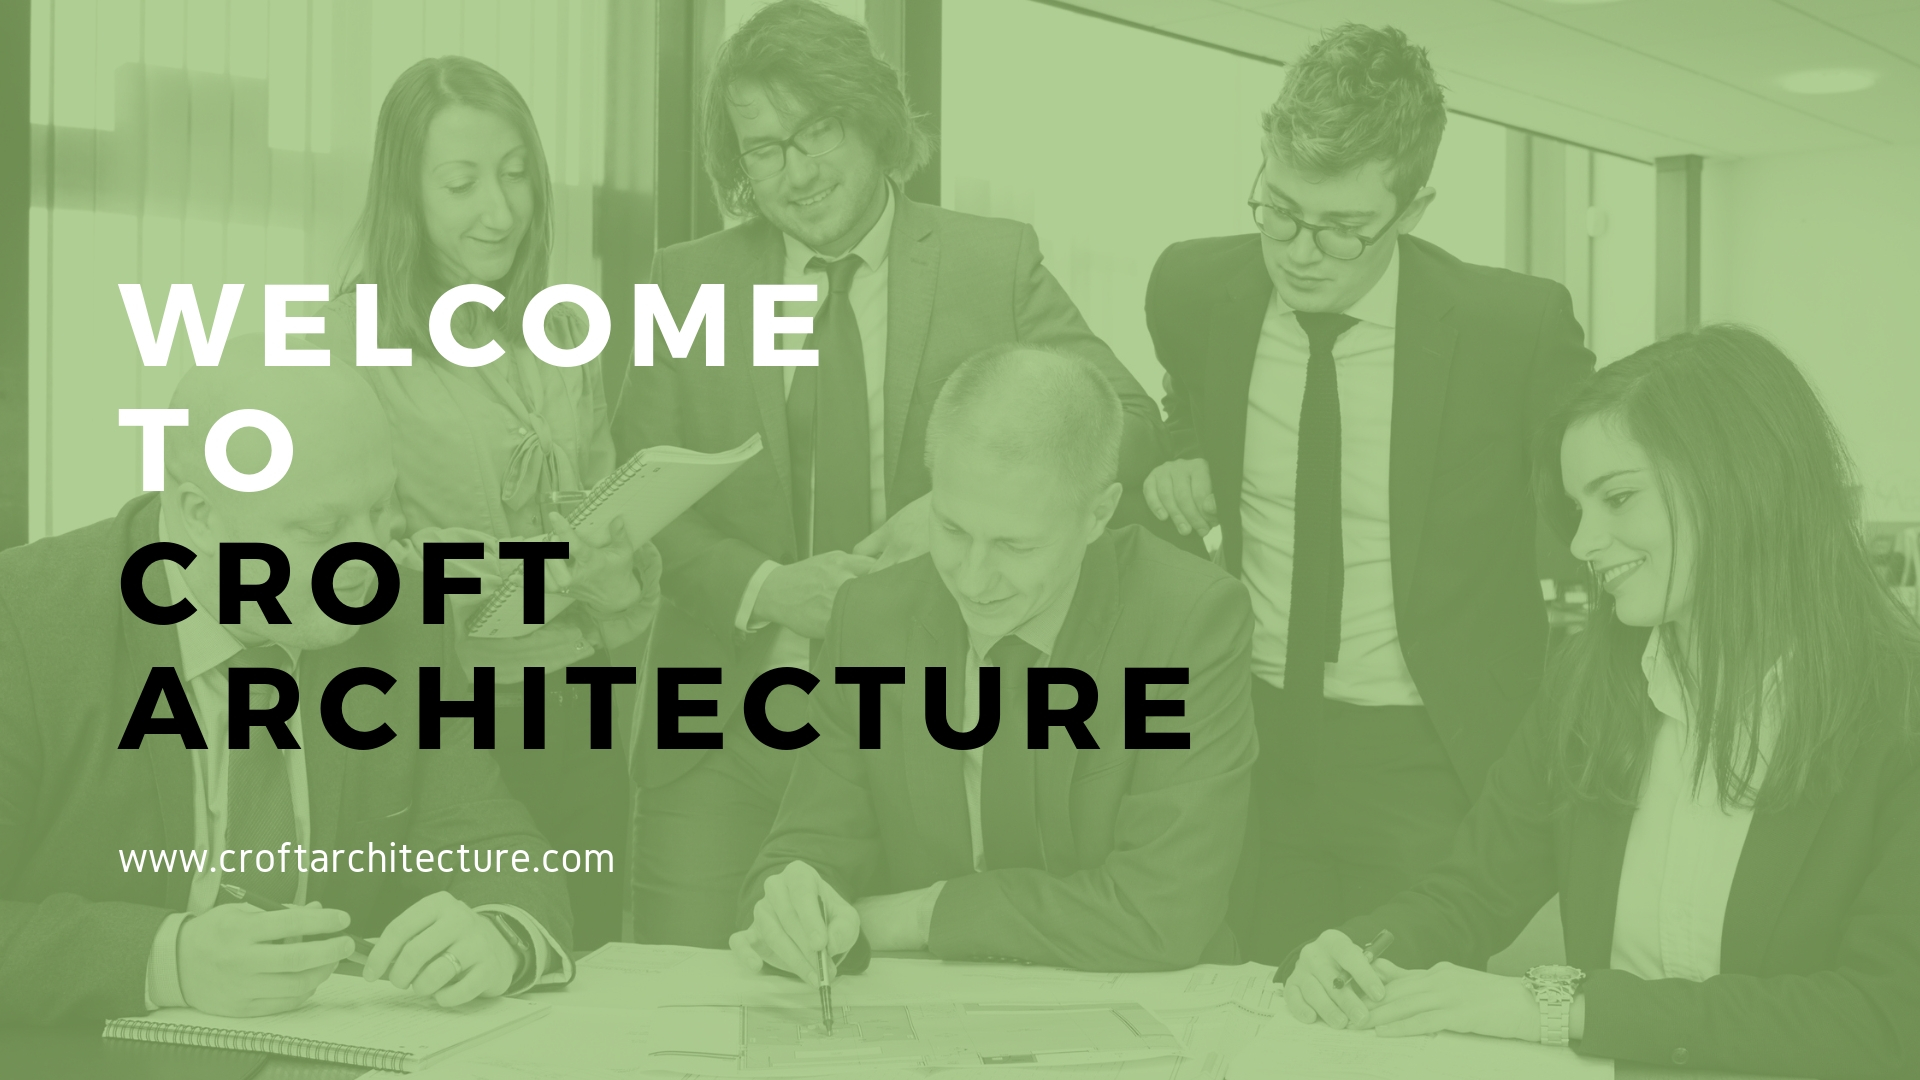 Welcome to Croft Architecture